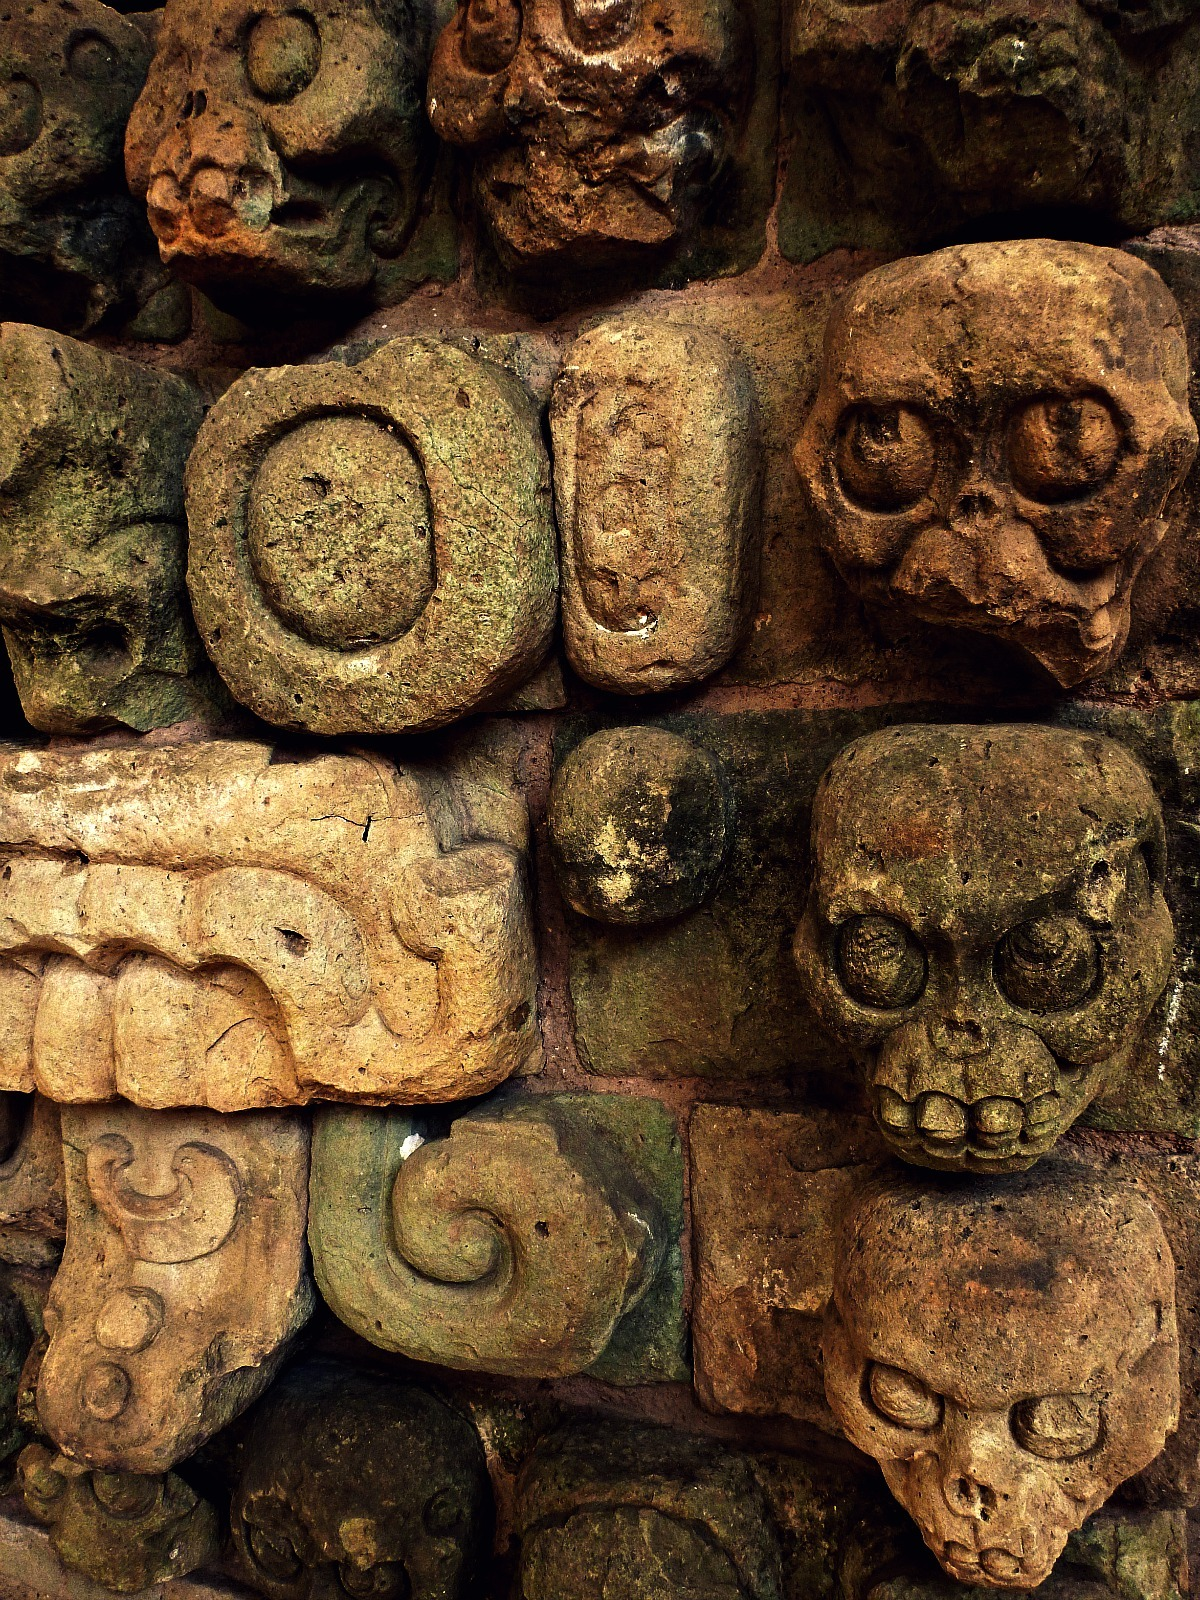 Ancient Mayan skull carvings from Copan. Courtesy & currently located at the Museo Regional de Arqueología Maya, Honduras. Photo taken by Recovering Vagabond